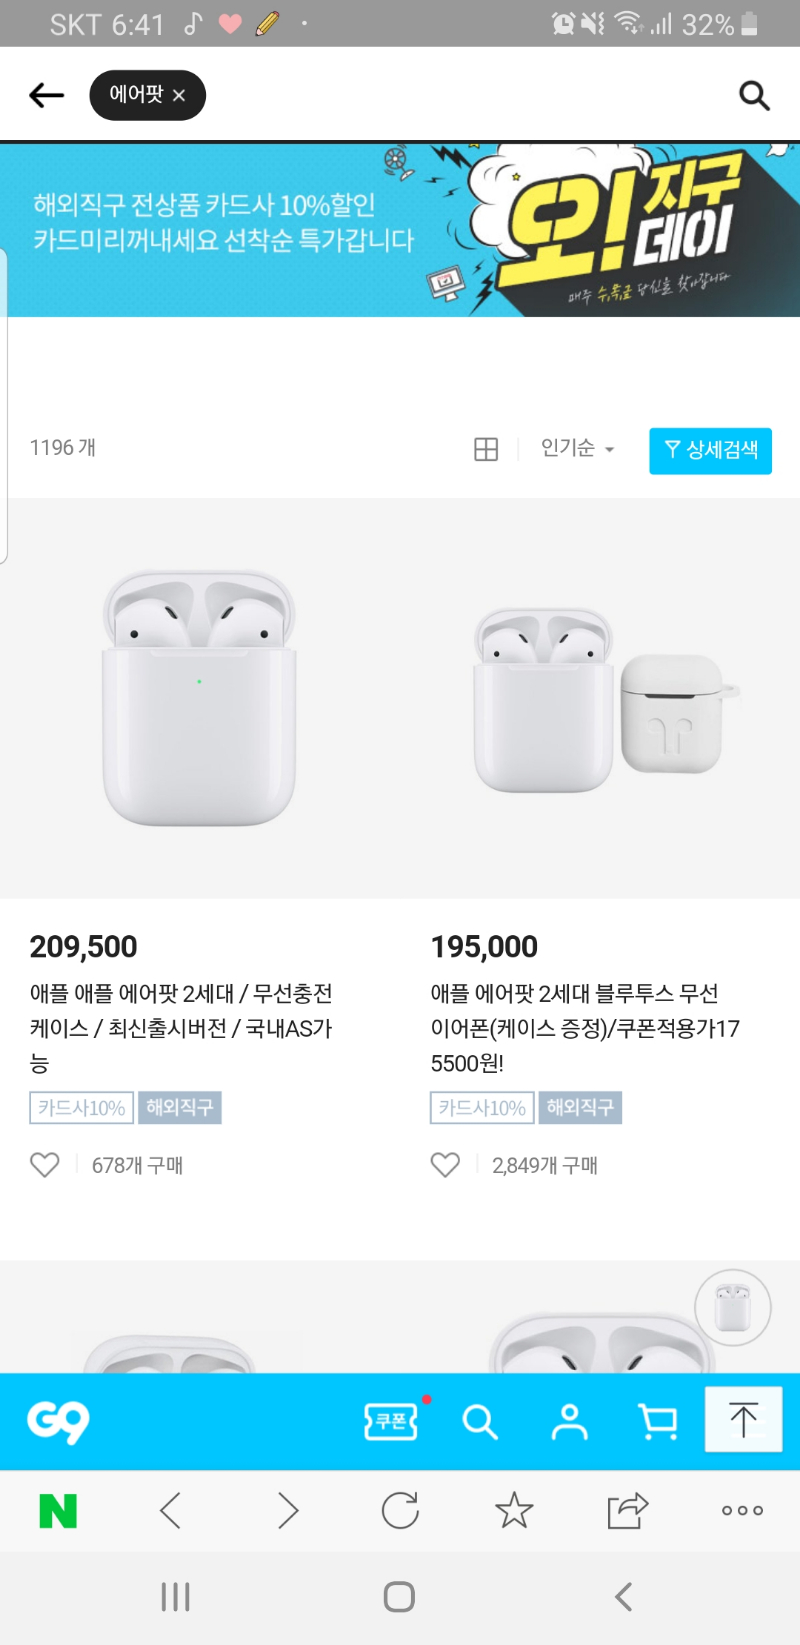 Screenshot_20190620-184103_NAVER.jpg